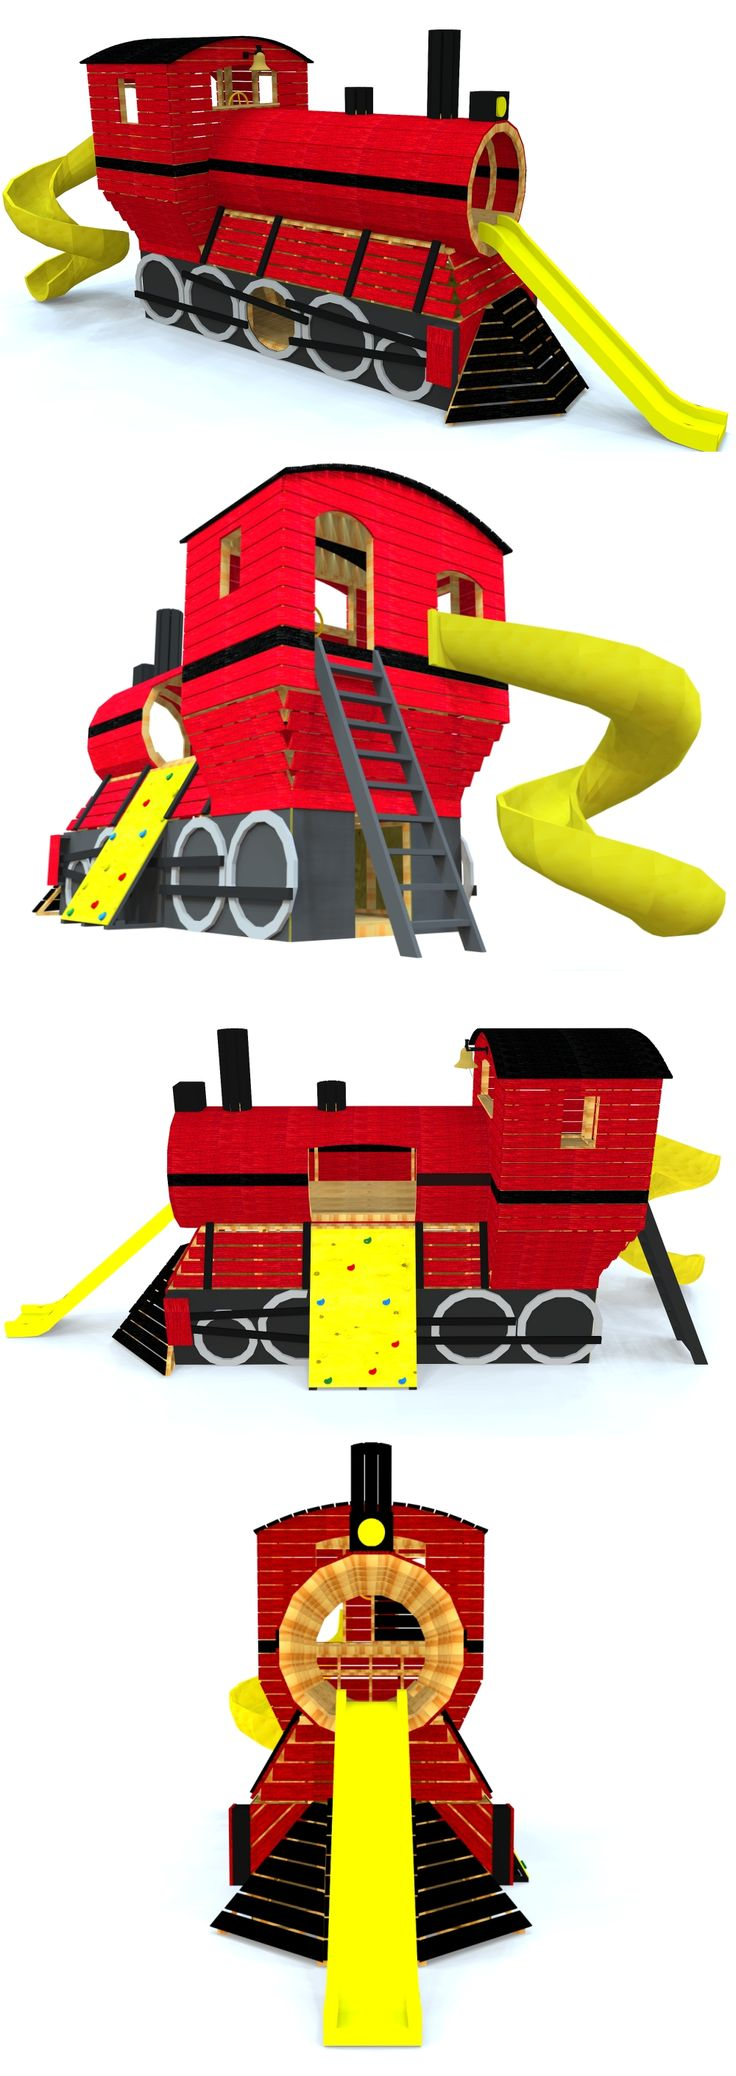 """The """"Train"""" playhouse plan located on paulsplayhouses.com.  Perfect for little boys who love old steam engines!"""